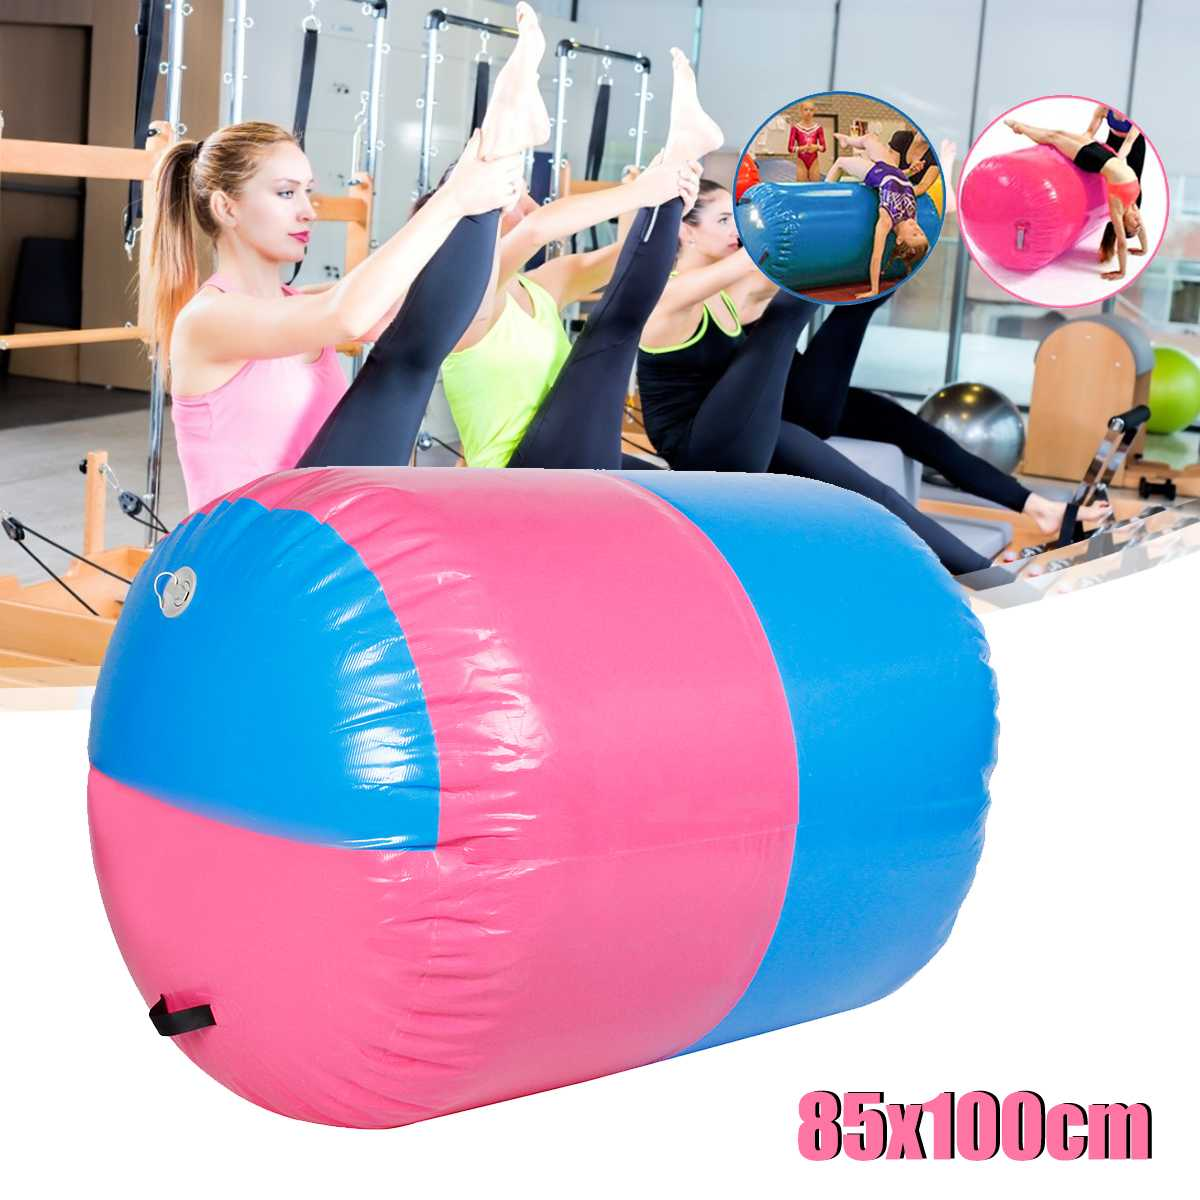 100x85cm Inflatable Airtrack Air Mat Home Roller Small Airtrack Gymnastics Mat Cylinder Gym Training Sport Fitness Air Barrel